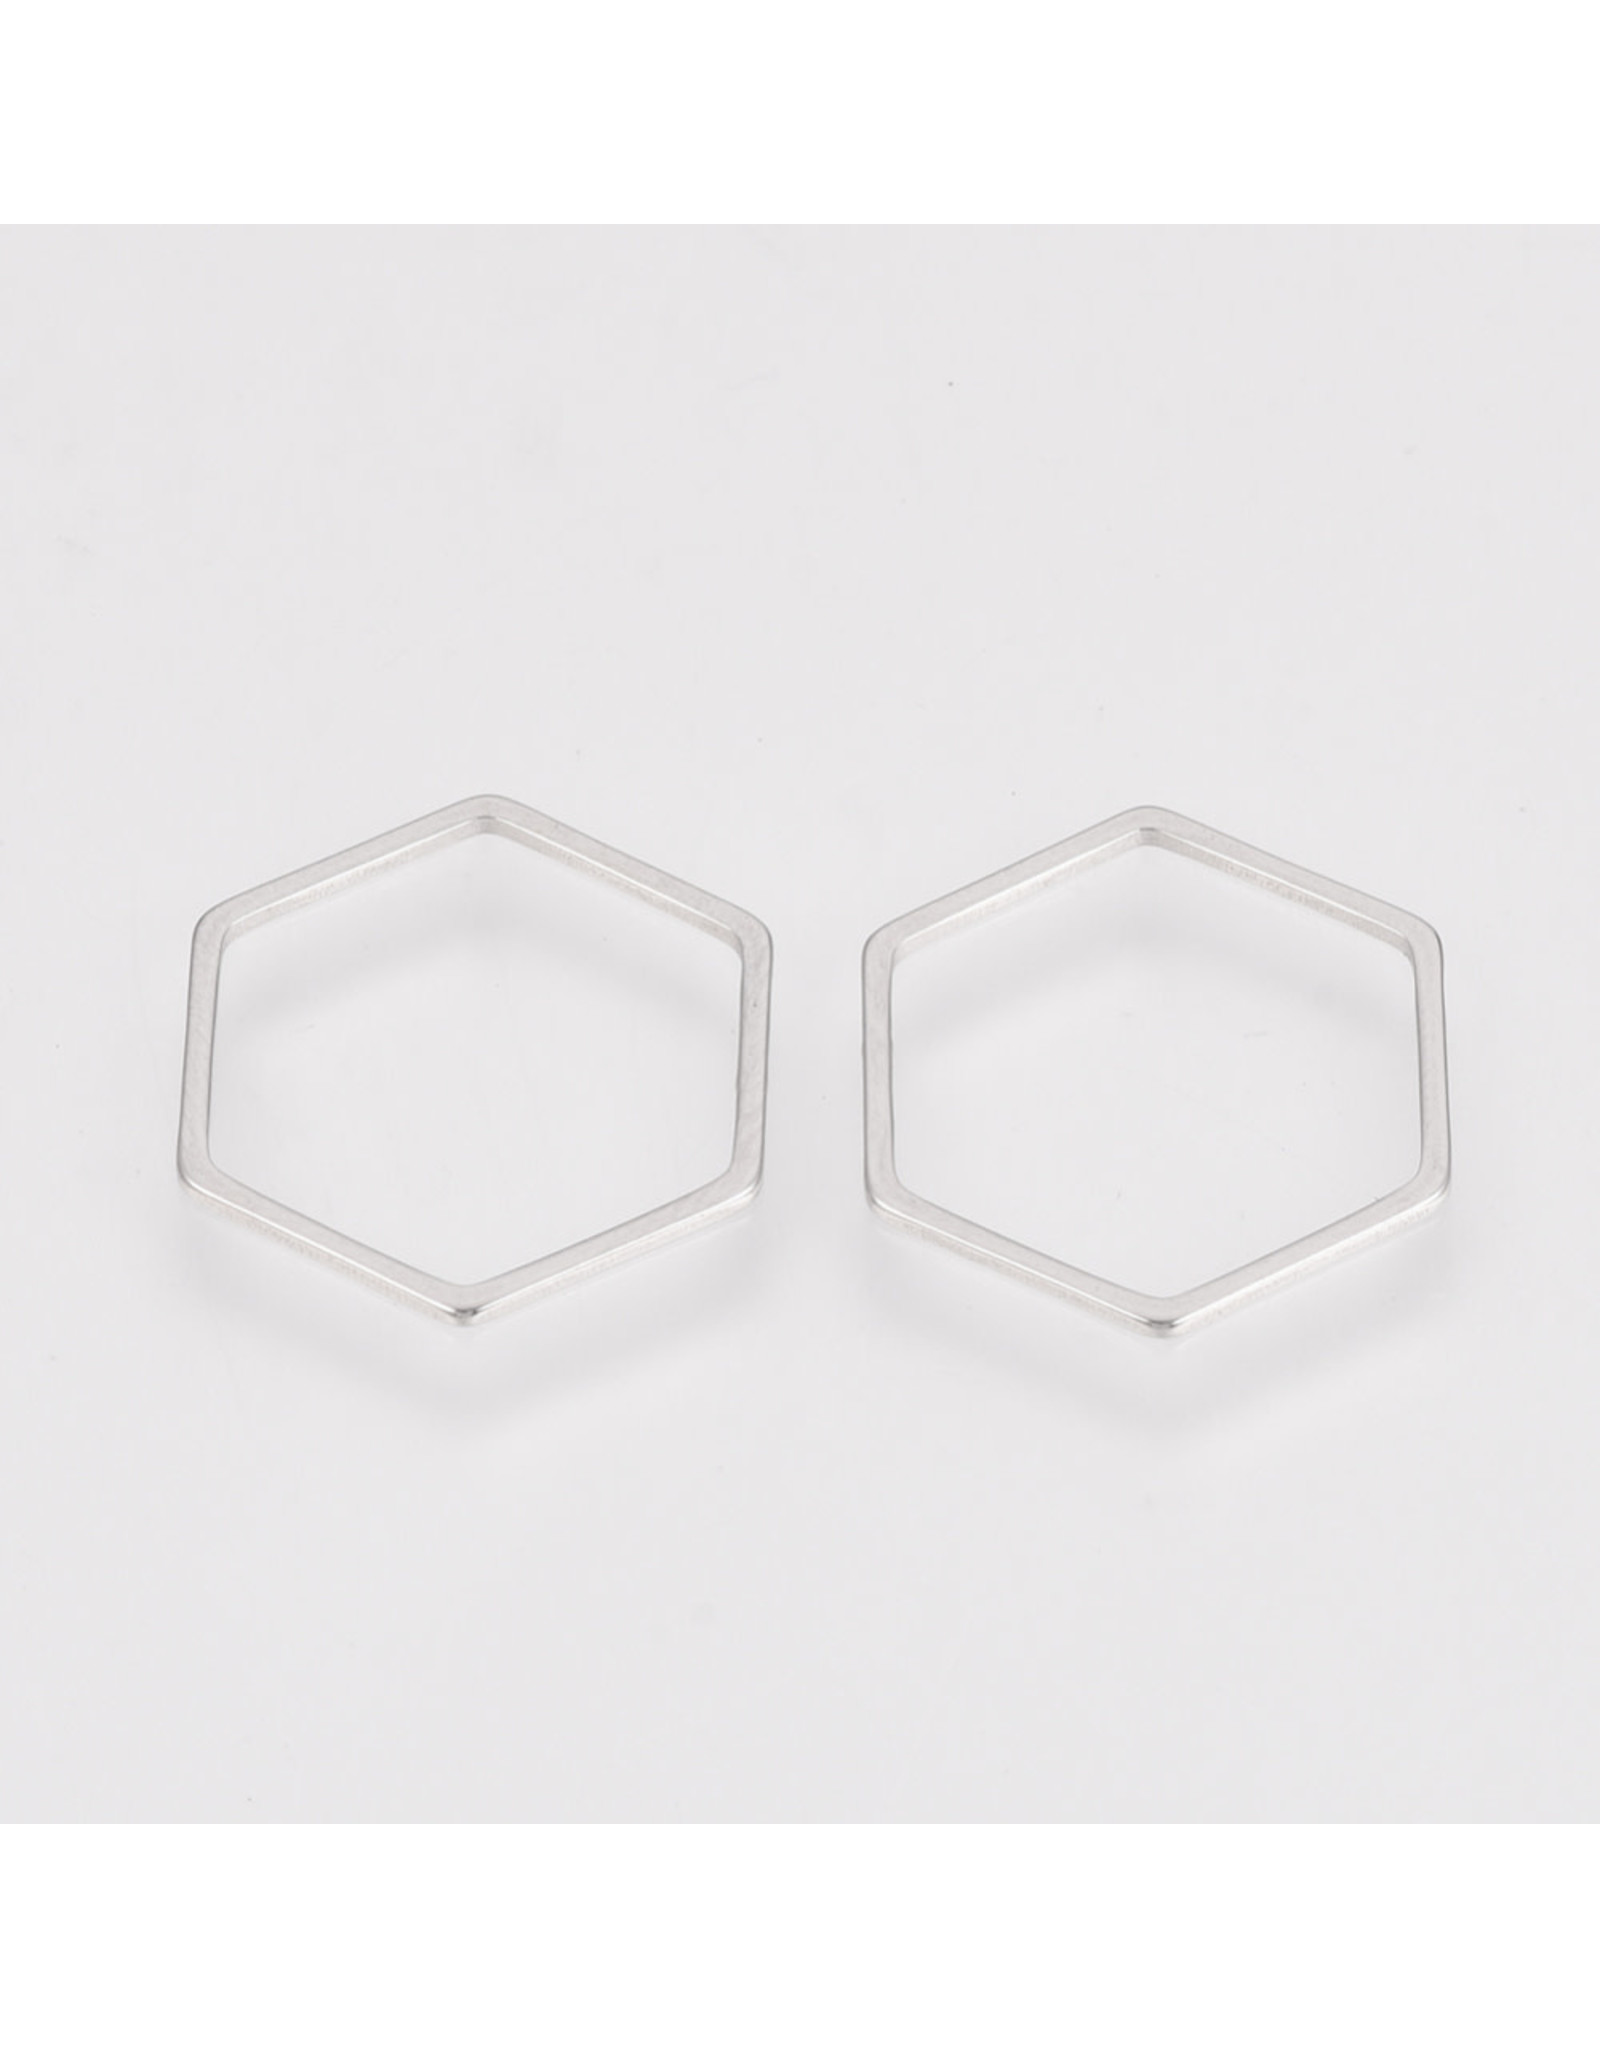 Hexagon Link  14x12mm Stainless Steel  x5  NF